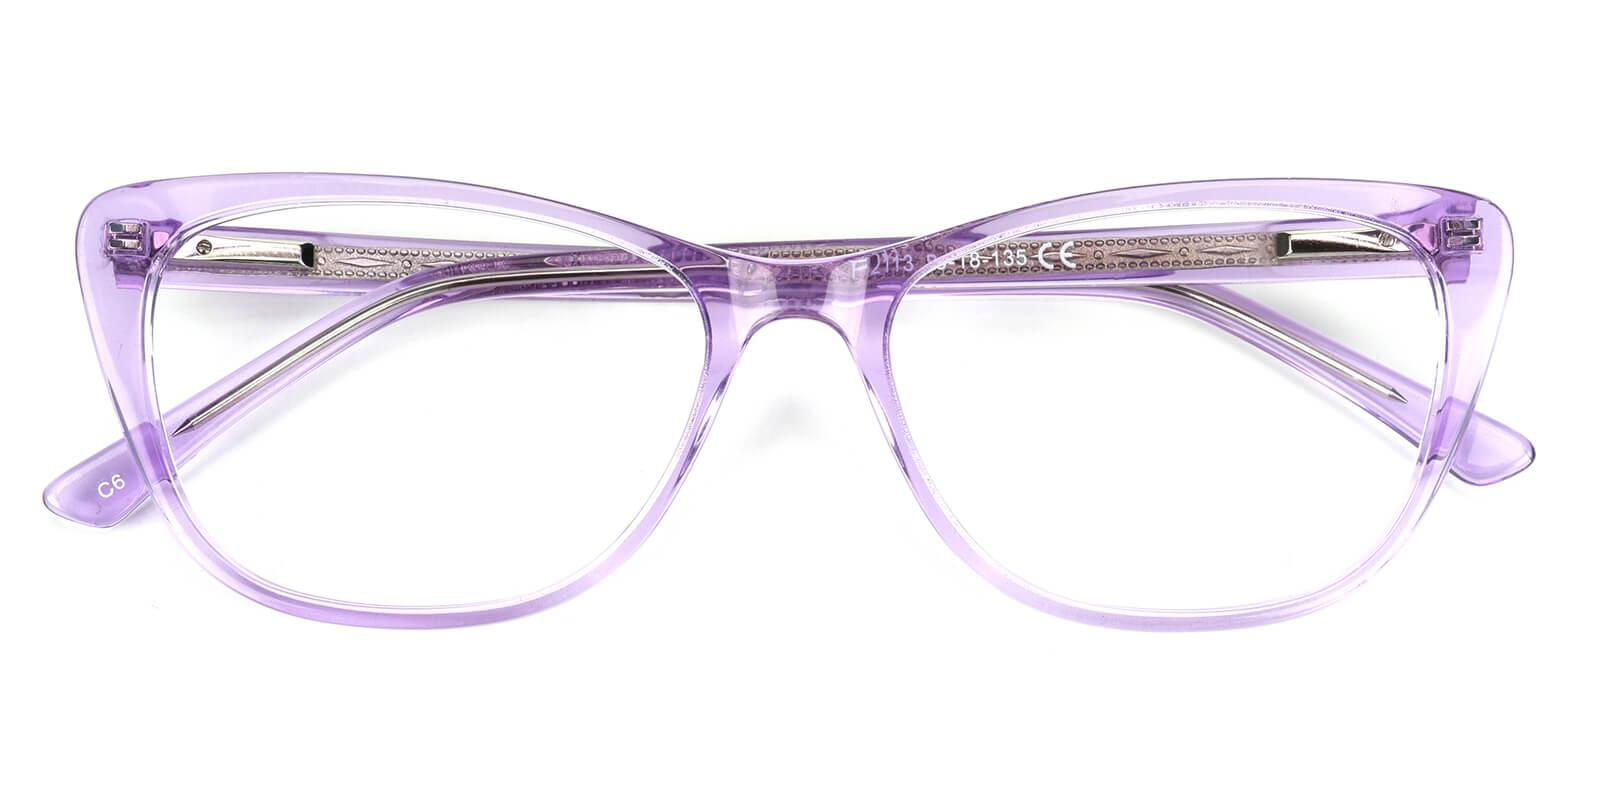 Tersaki-Purple-Cat-Acetate-Eyeglasses-detail